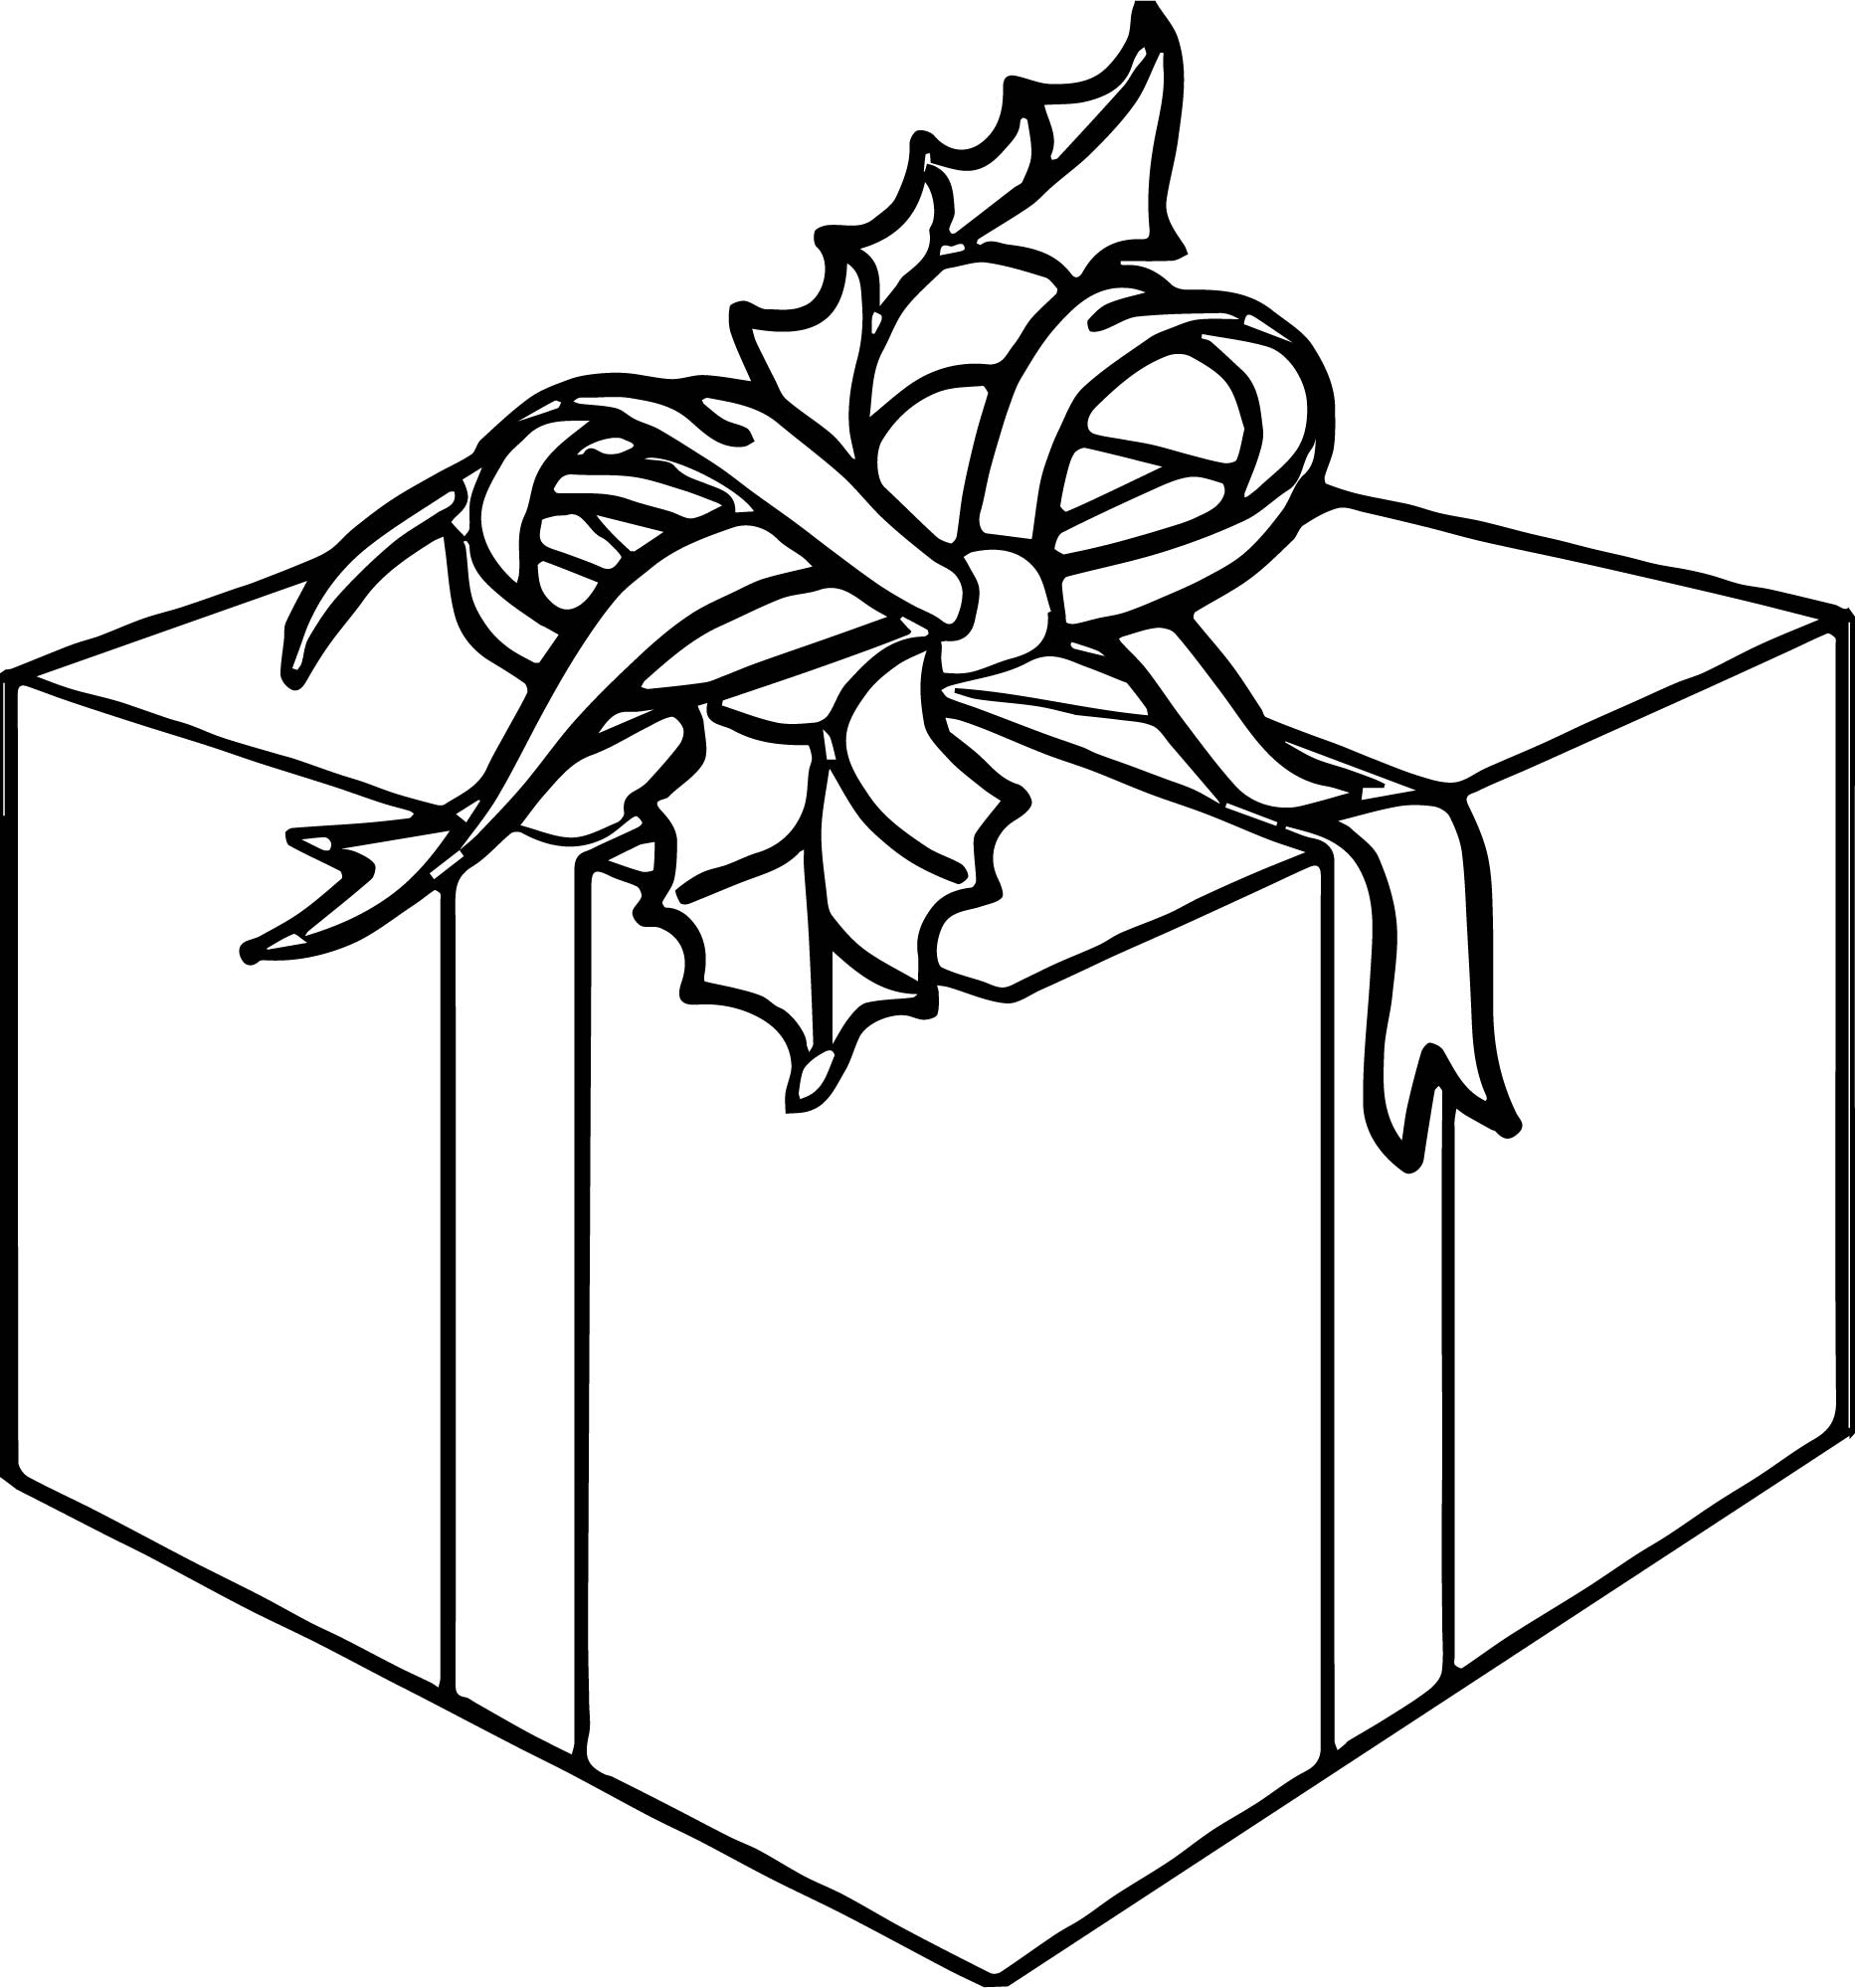 Any Gift Coloring Page